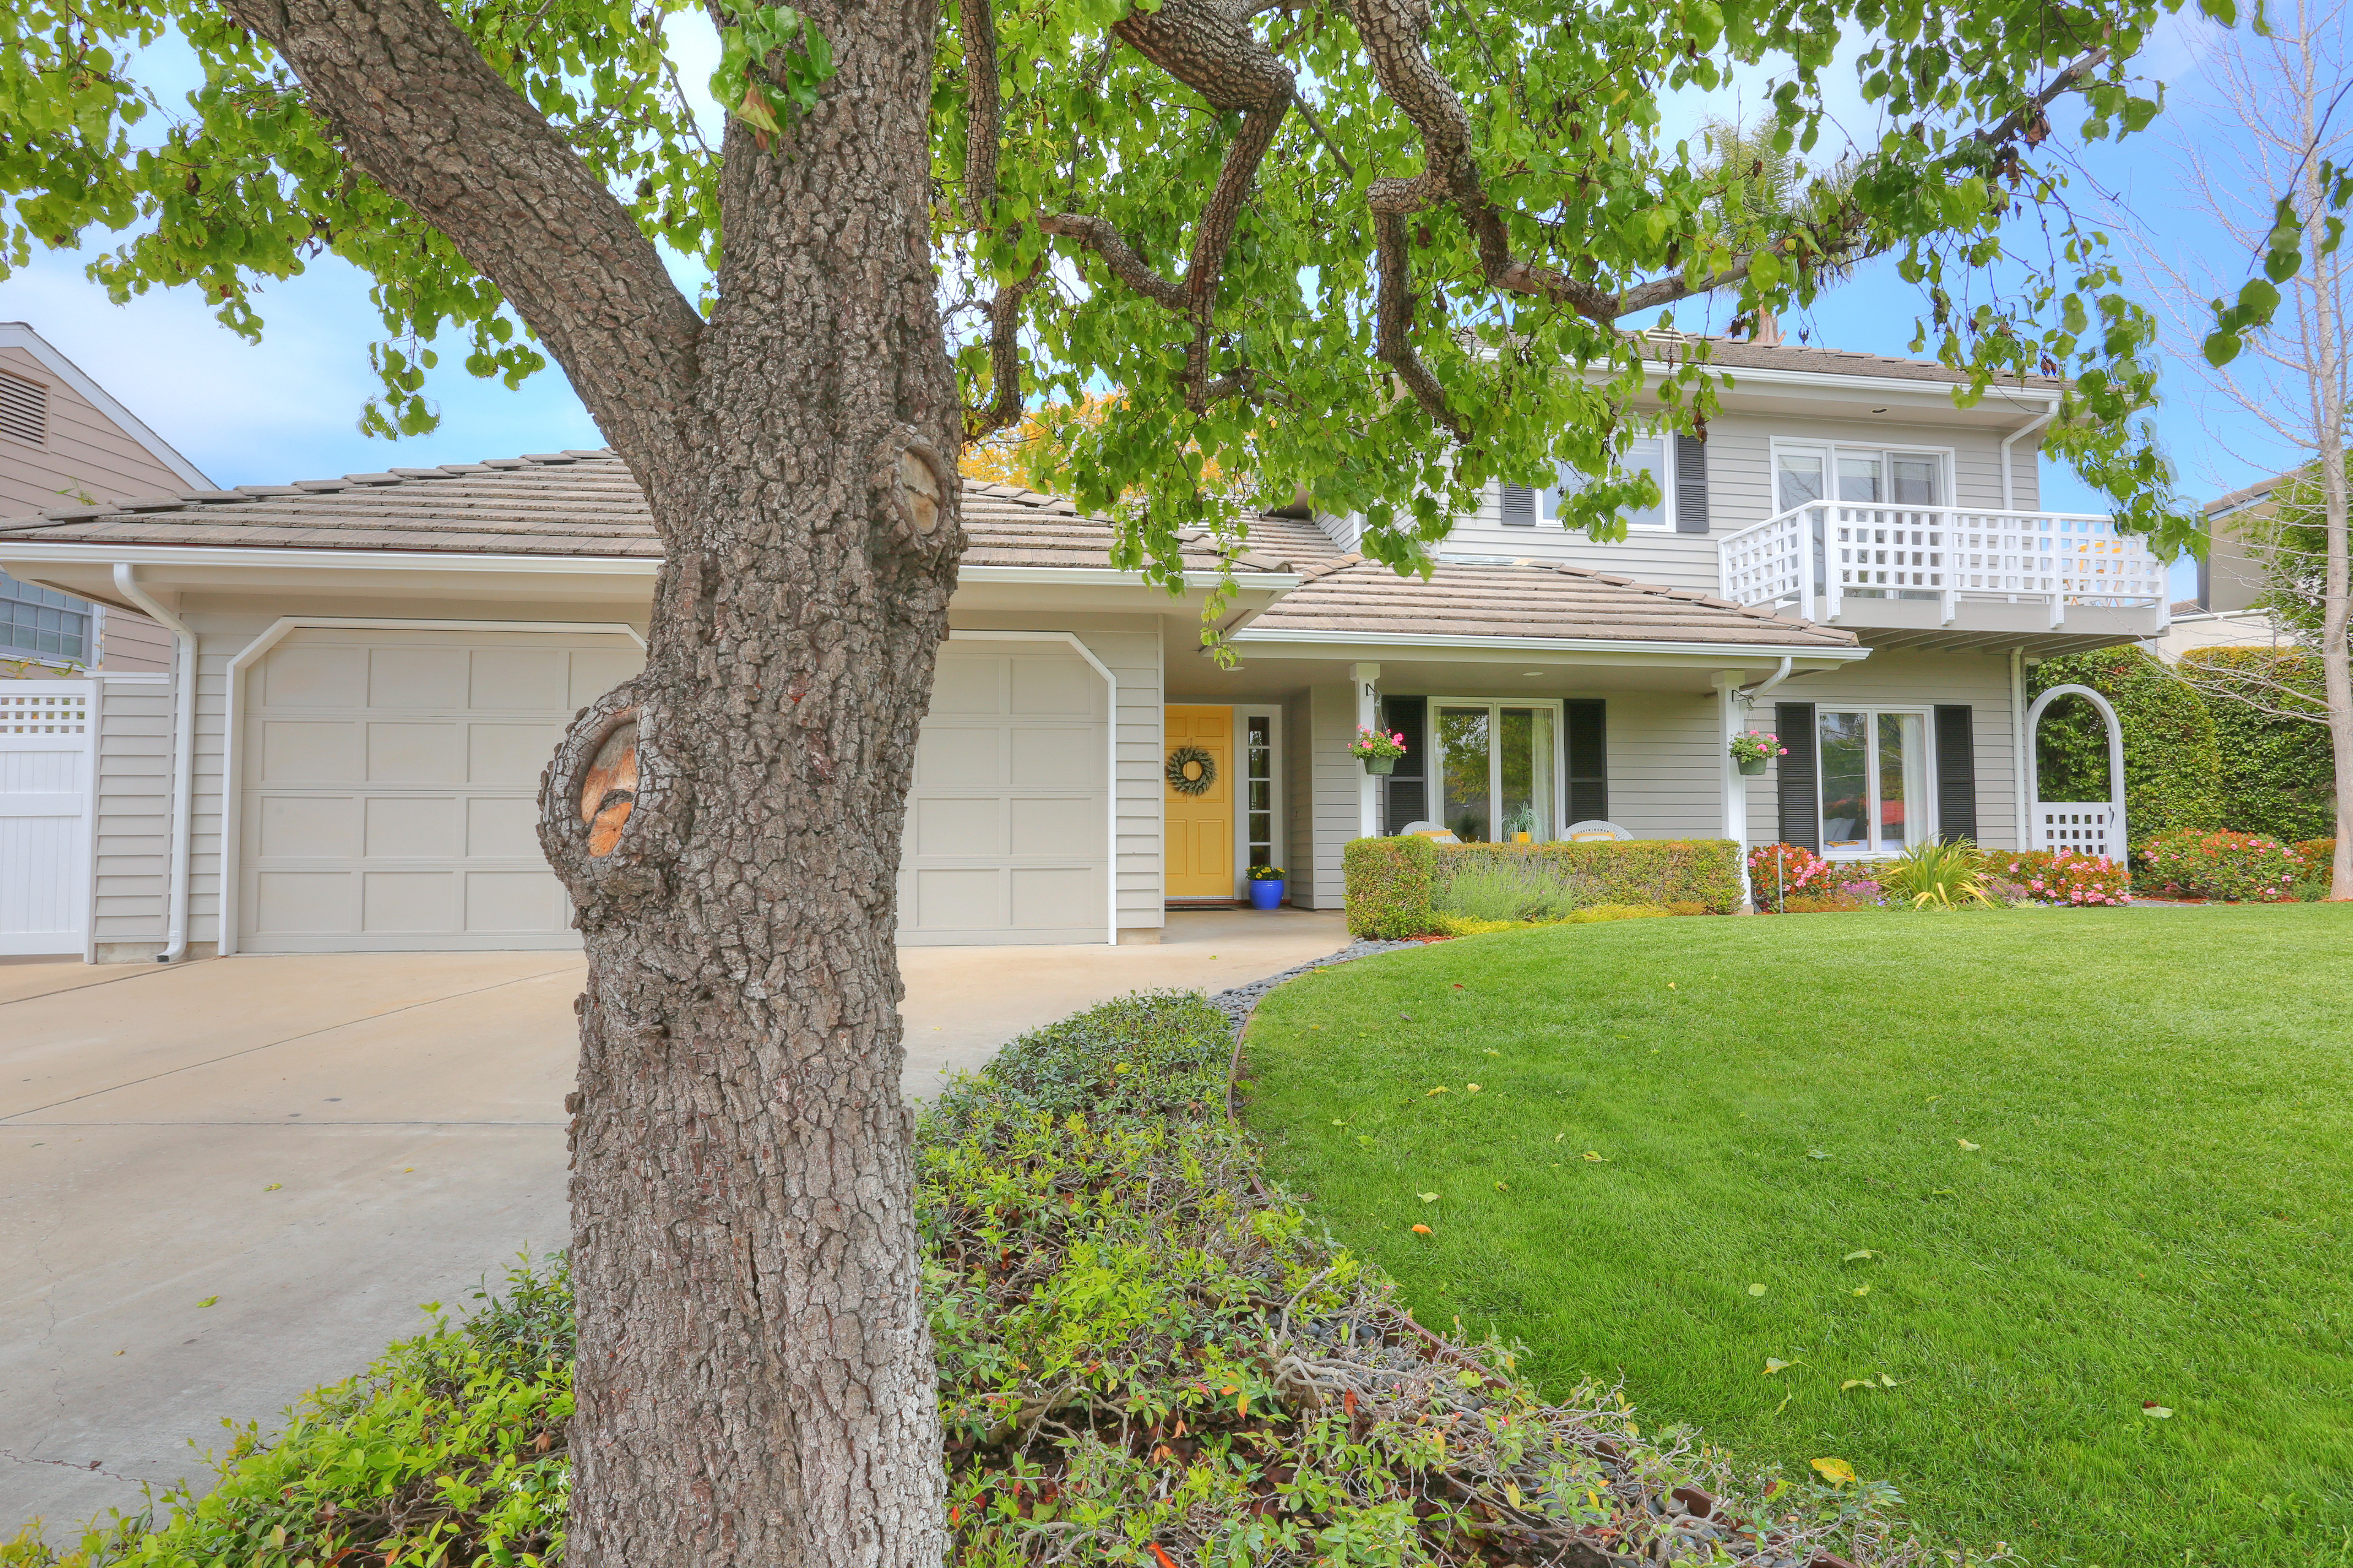 3739 Lincolnwood Dr - Streetview from Mailbox